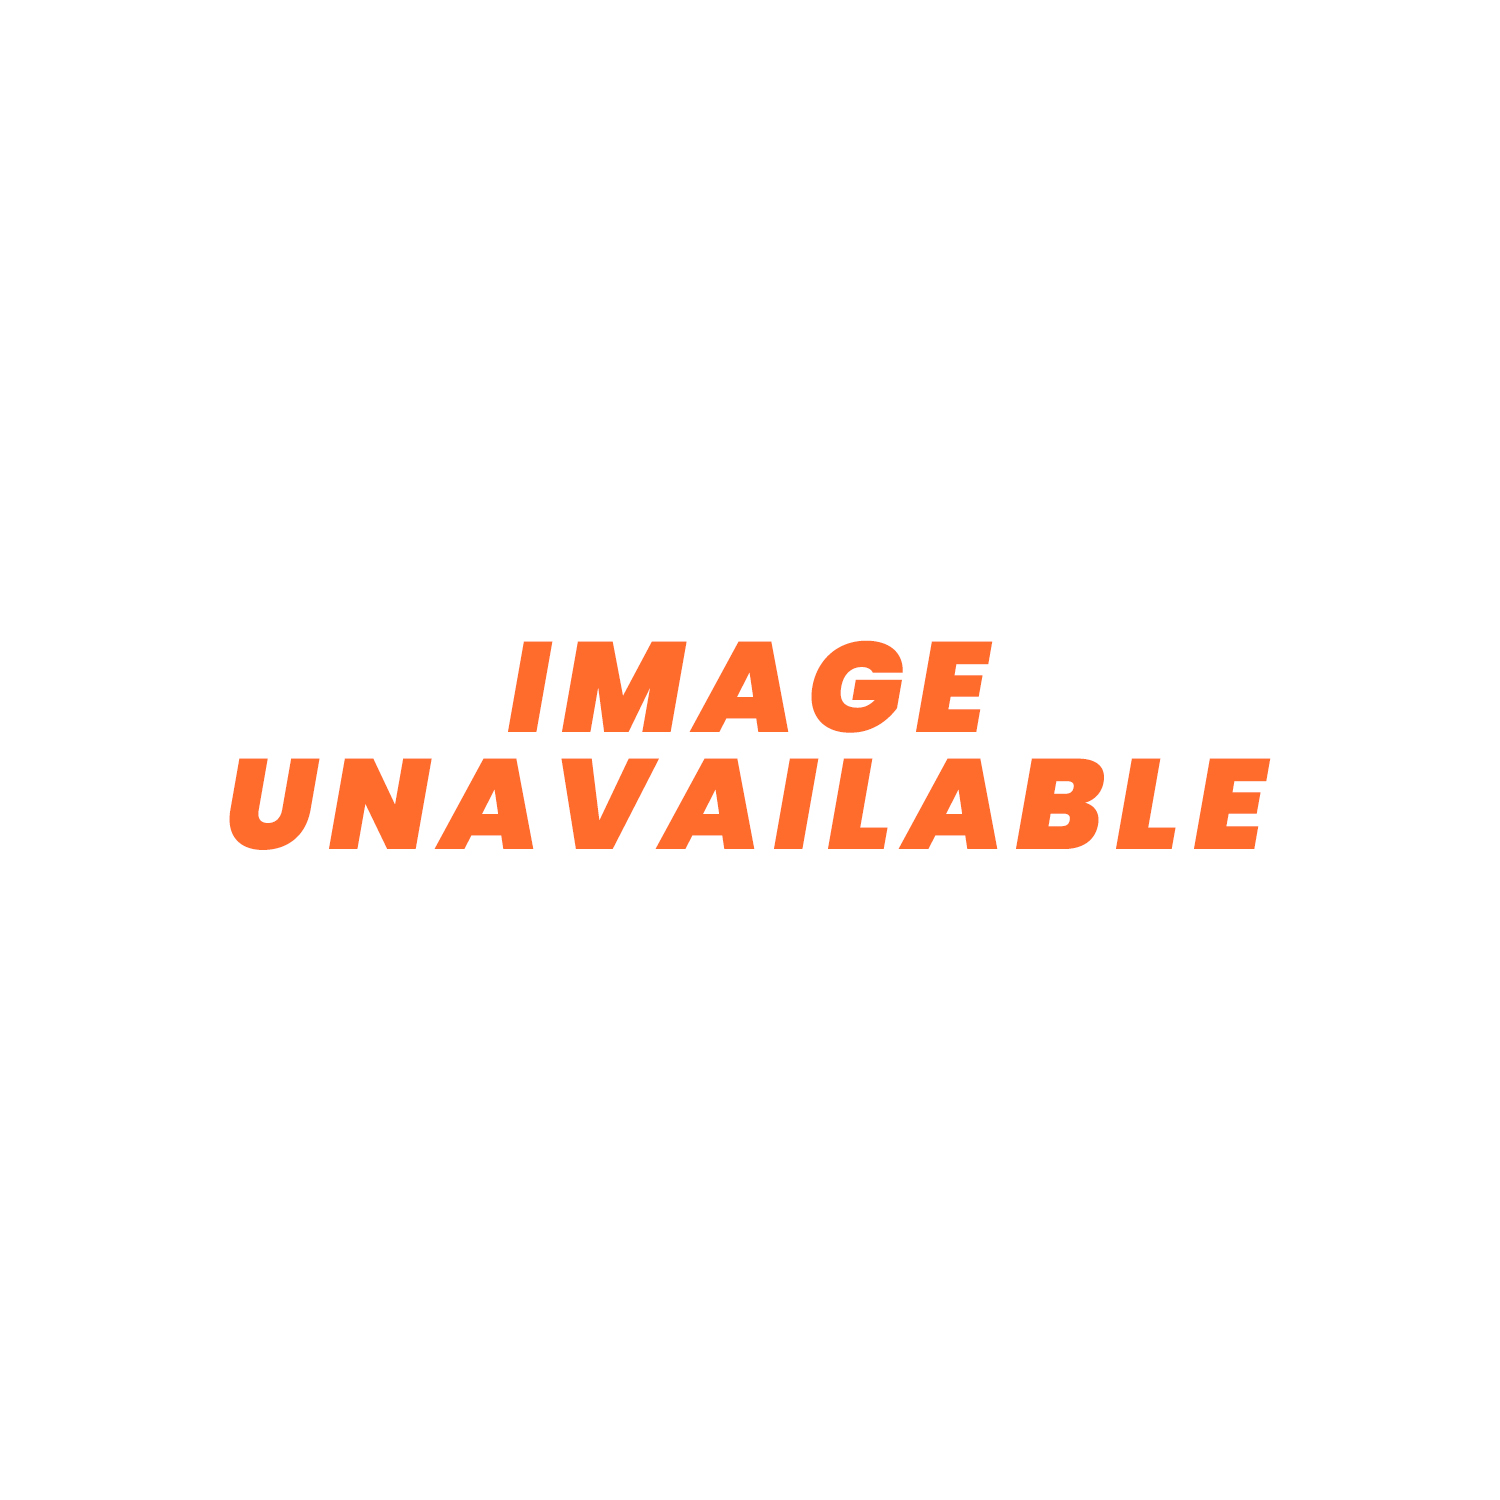 EWP150 Alloy Water Pump & Digital Controller 24v kit